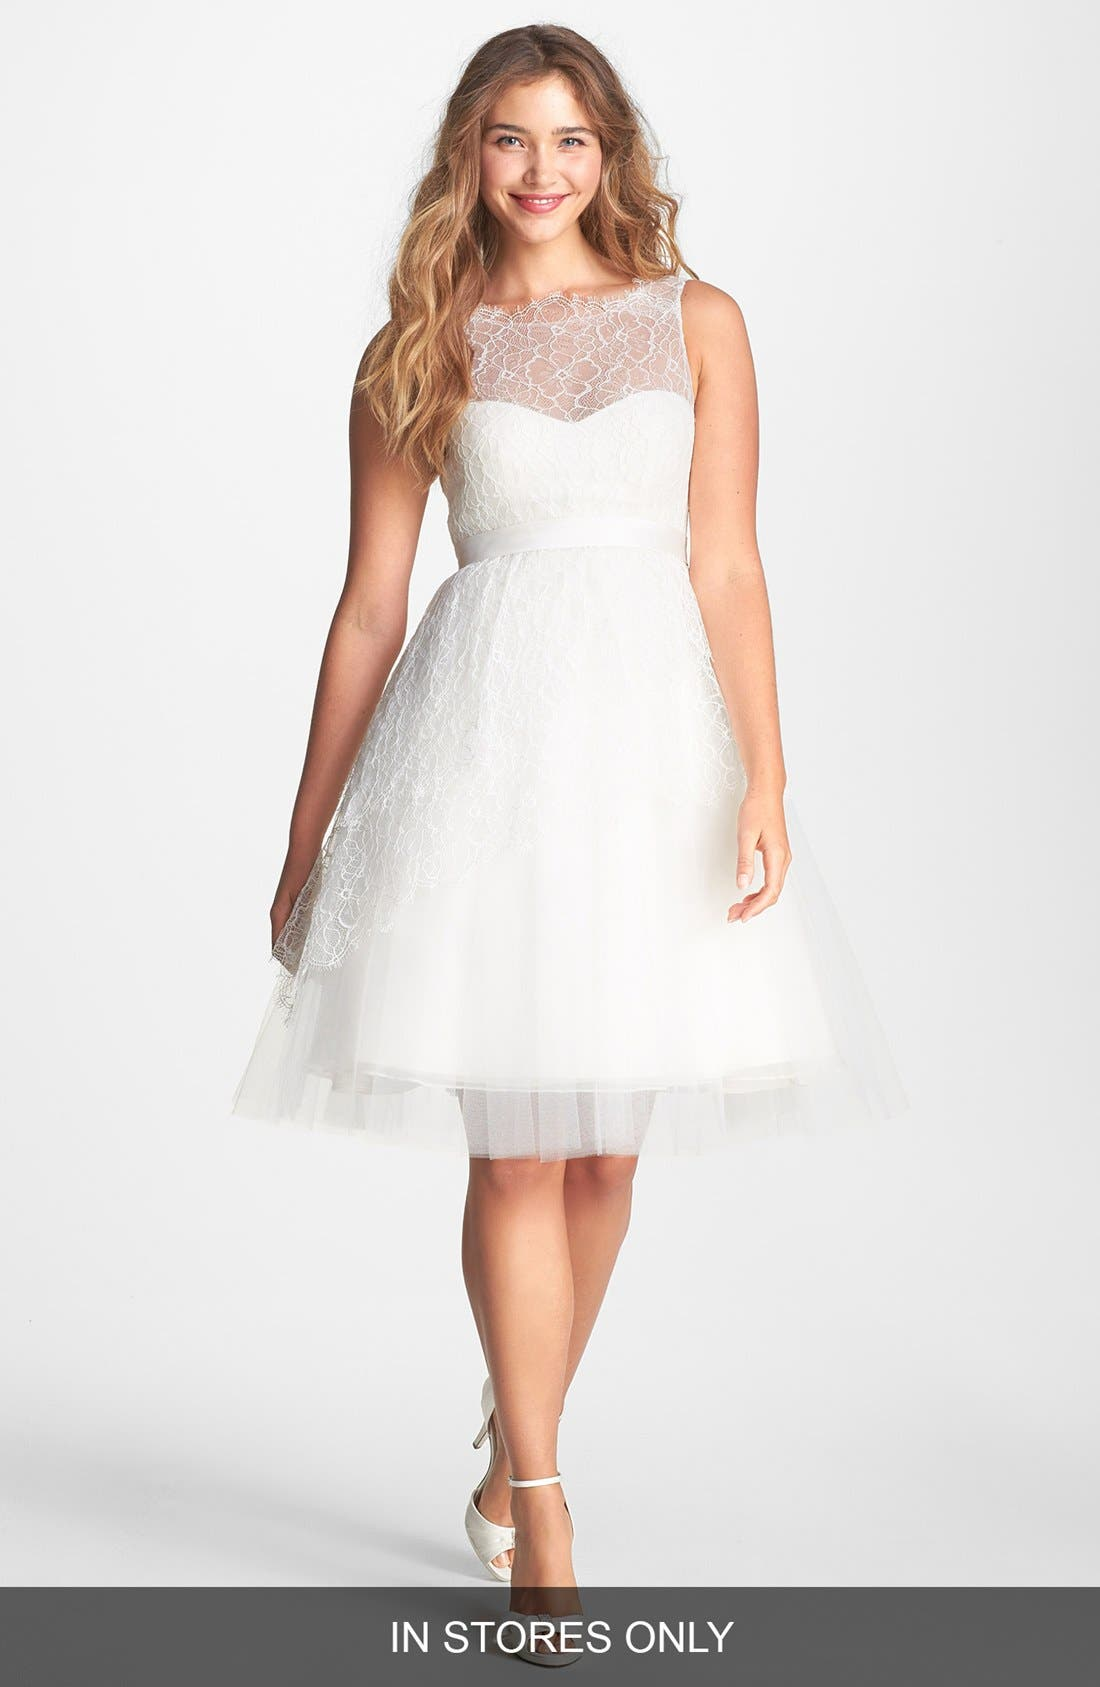 Main Image - Jenny Yoo 'Bella' Chantilly Lace Fit & Flare Dress (In Stores Only)